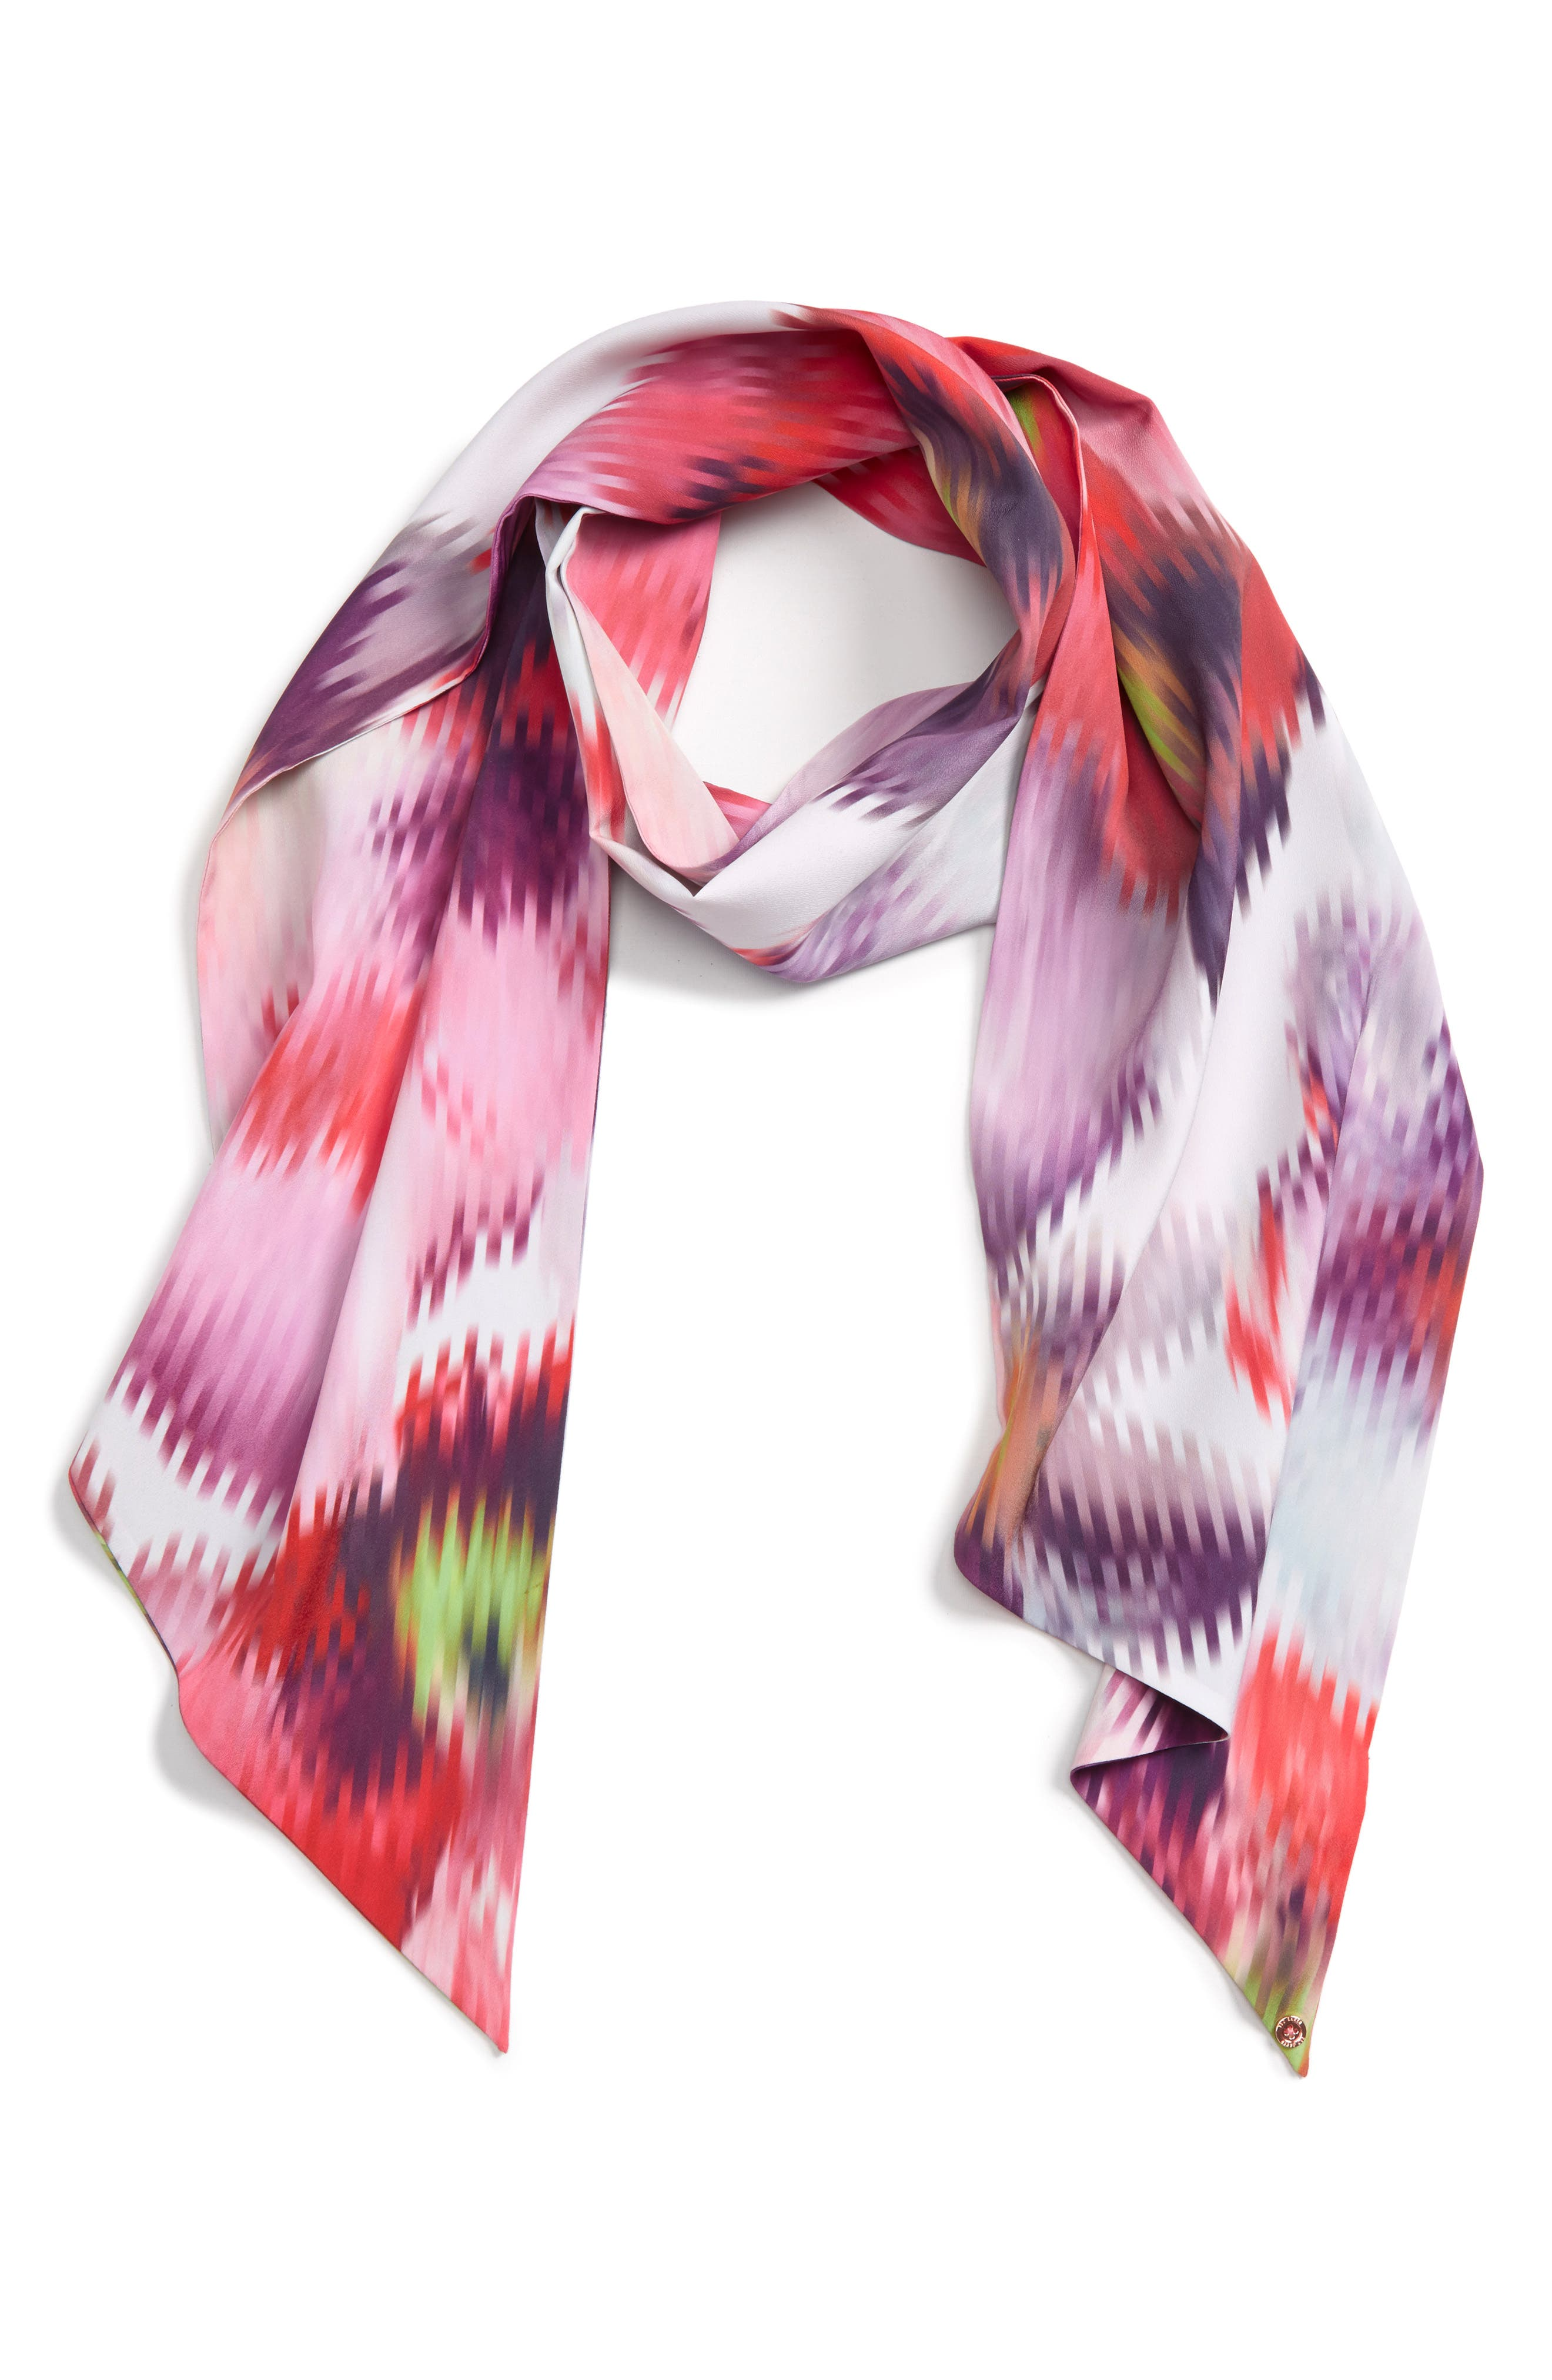 Evonna Expressive Pansy Skinny Scarf,                             Main thumbnail 1, color,                             050